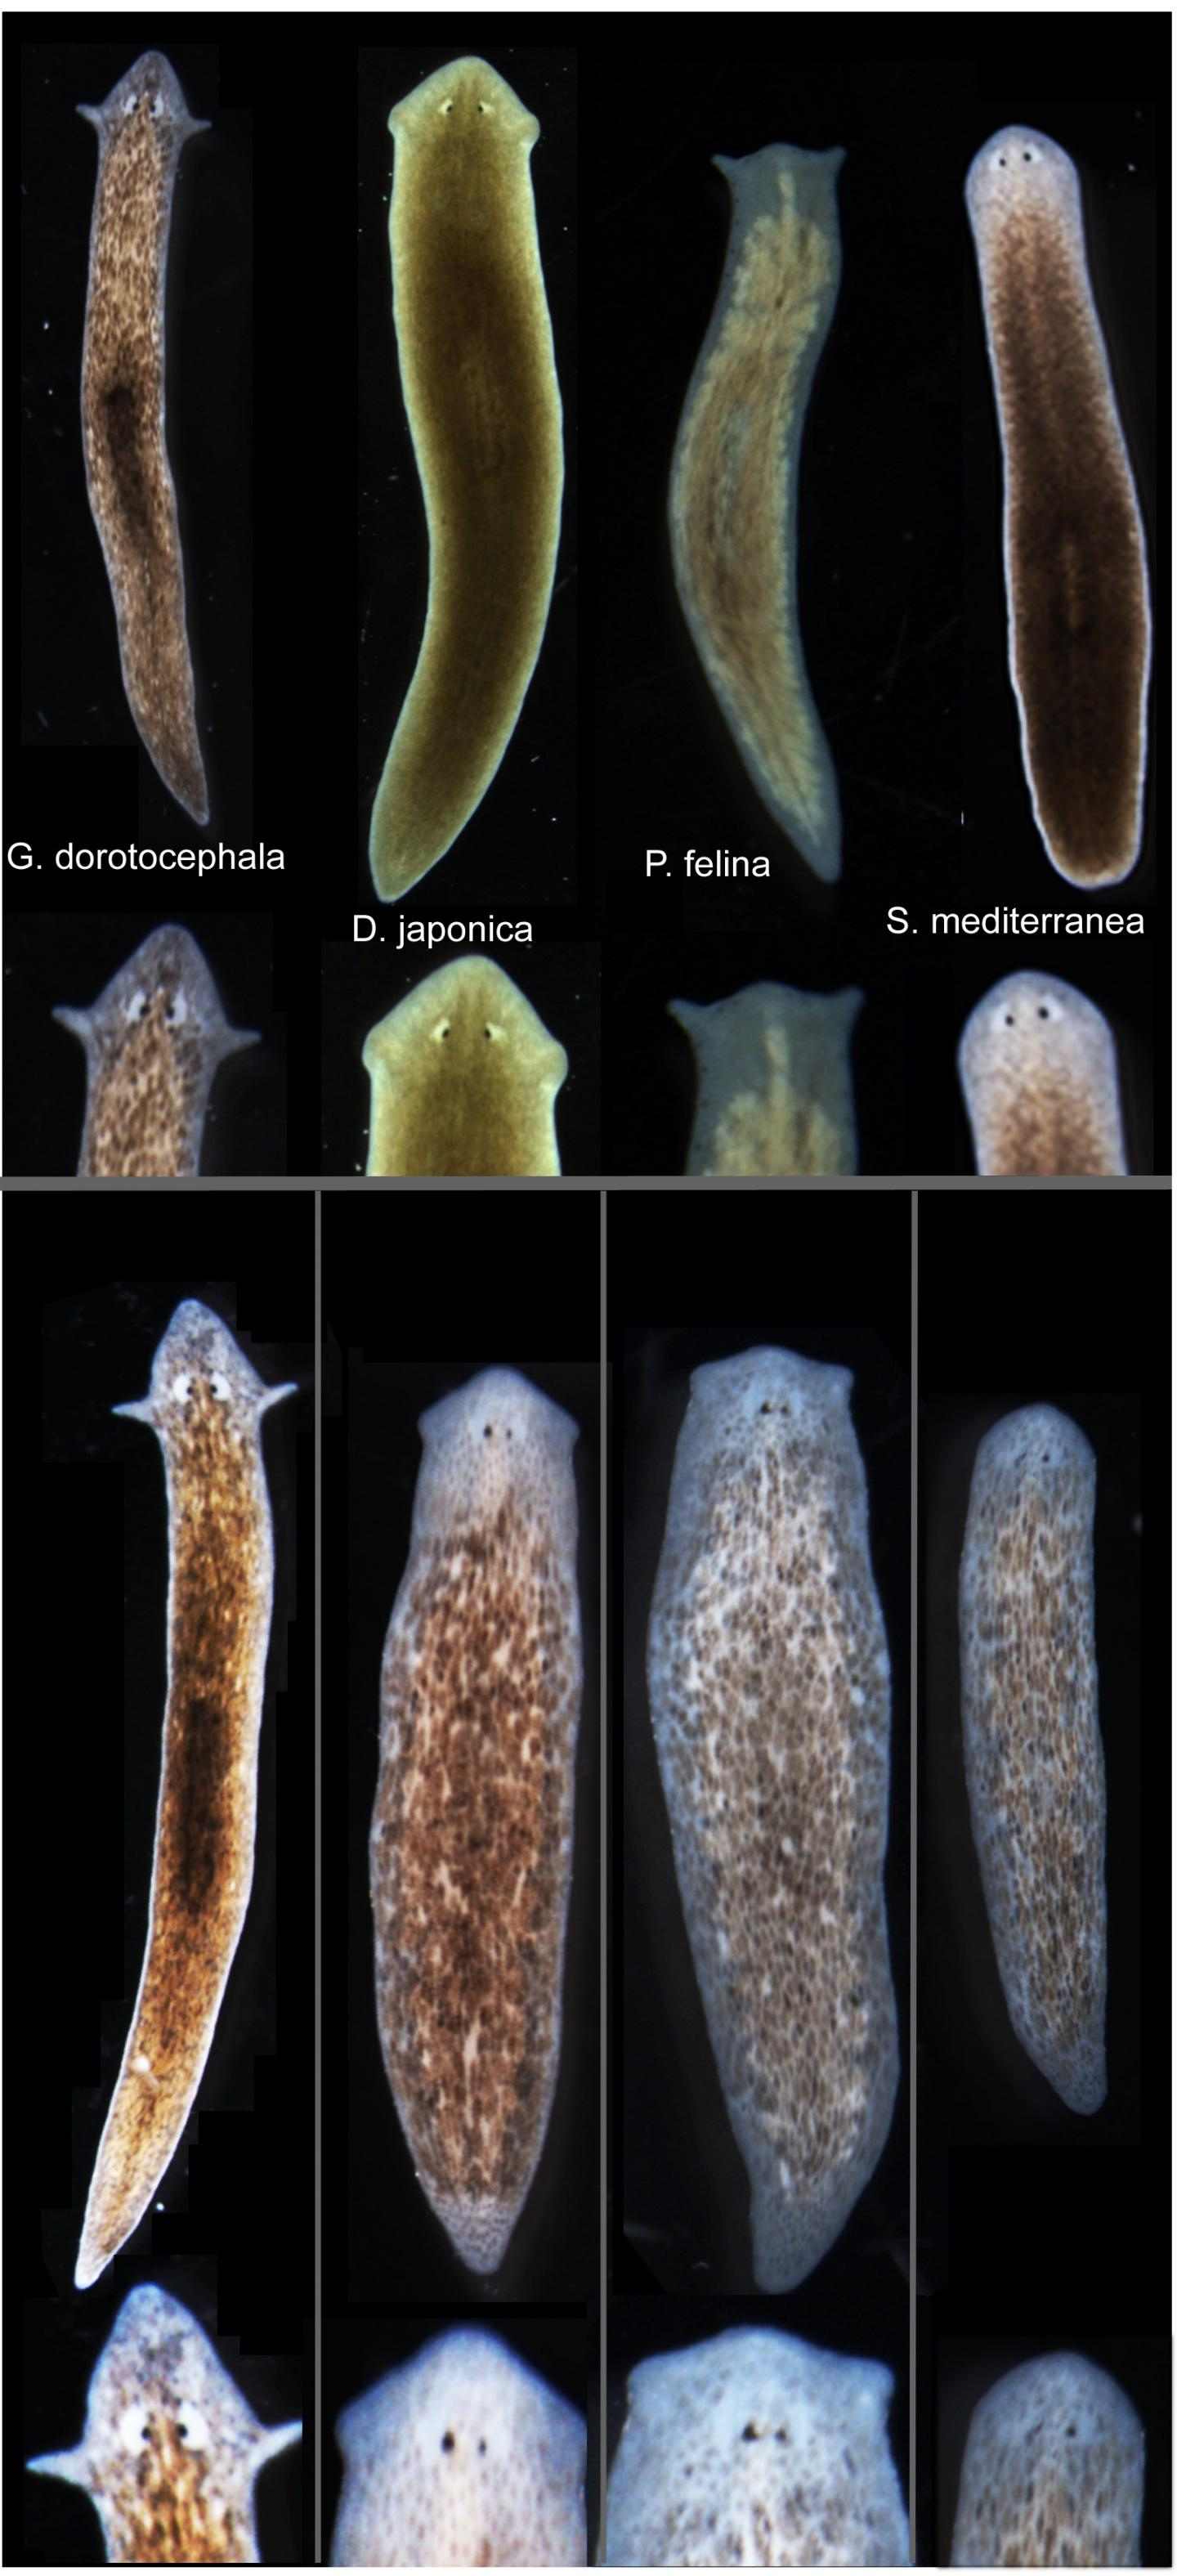 """Biologists induced one species of flatworm—<I>G. dorotocephal</I>, top left—to grow heads and brains characteristic of other species of flatworm, top row, without altering genomic sequence. Examples of the outcomes can be seen in the bottom row of the image. [Center for Regenerative and Developmental Biology, School of Arts and Sciences, Tufts University.]"""" width=""""60%"""" height=""""60%"""" /><br /> <span class="""